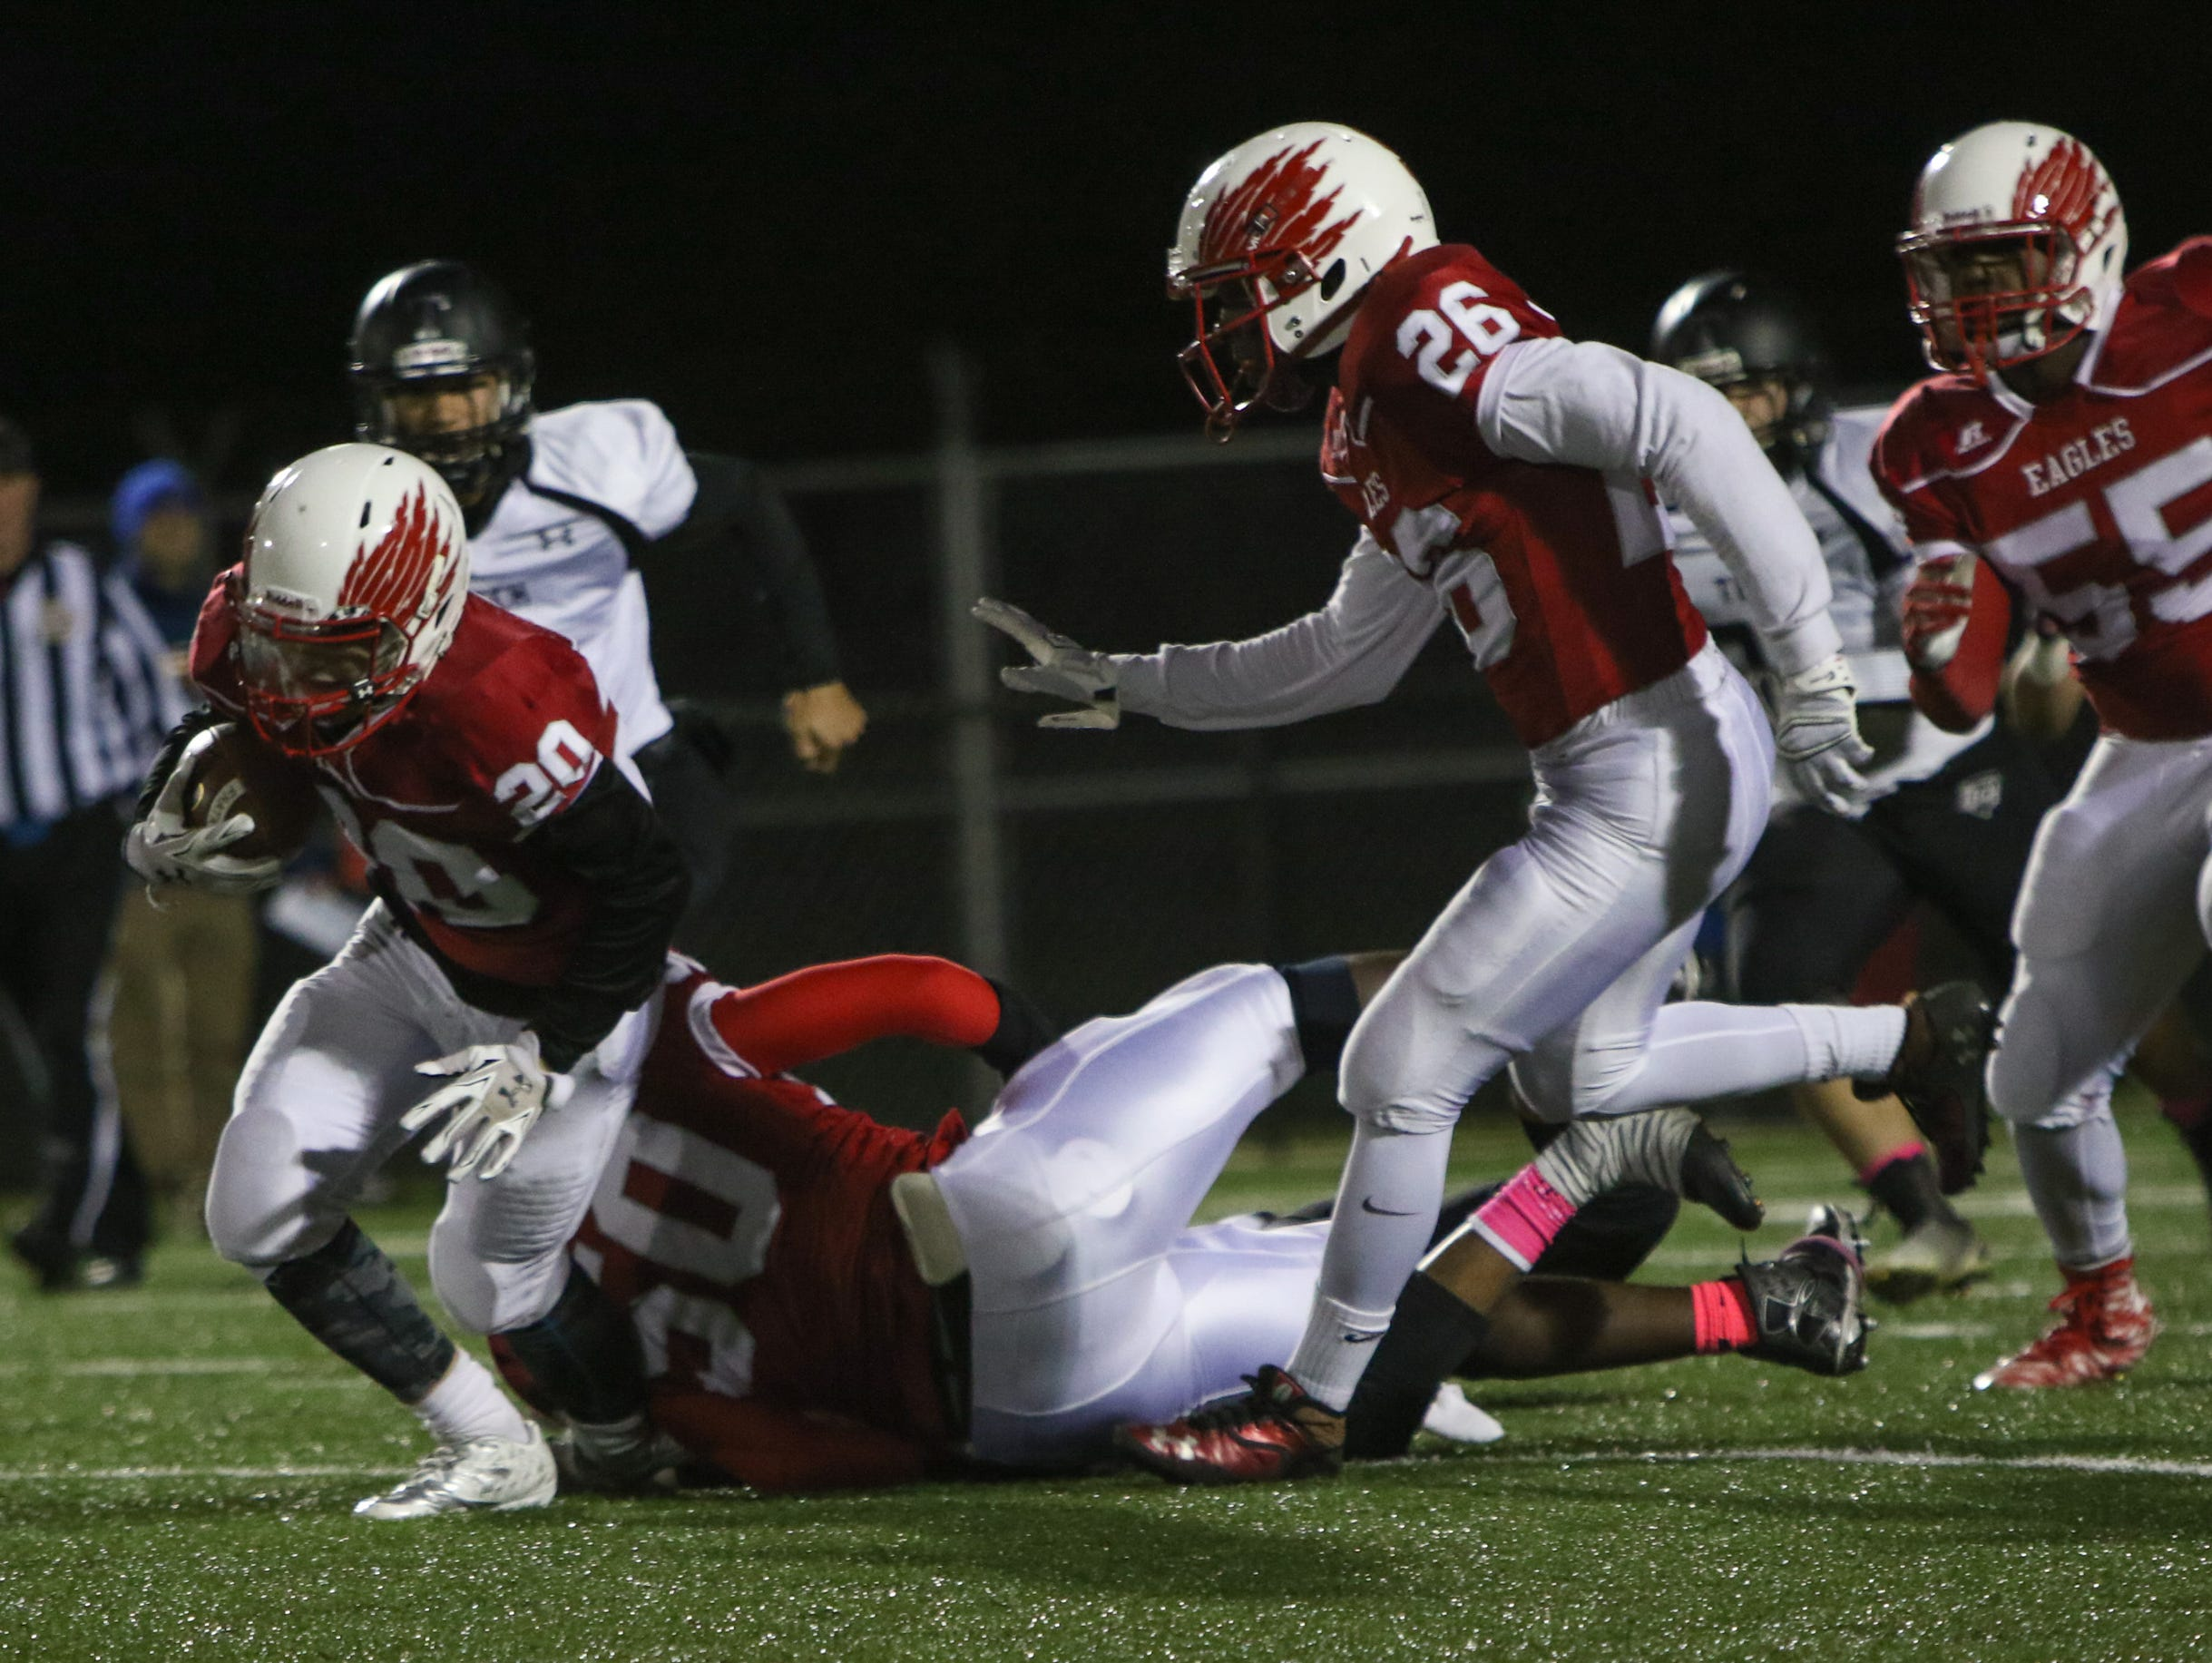 Smyrna defensive back Jake Kaiser recovers a Sussex Tech fumble in the fourth quarter. Smyrna defeats previously undefeated Sussex Tech 42-0 at Smyrna Saturday.